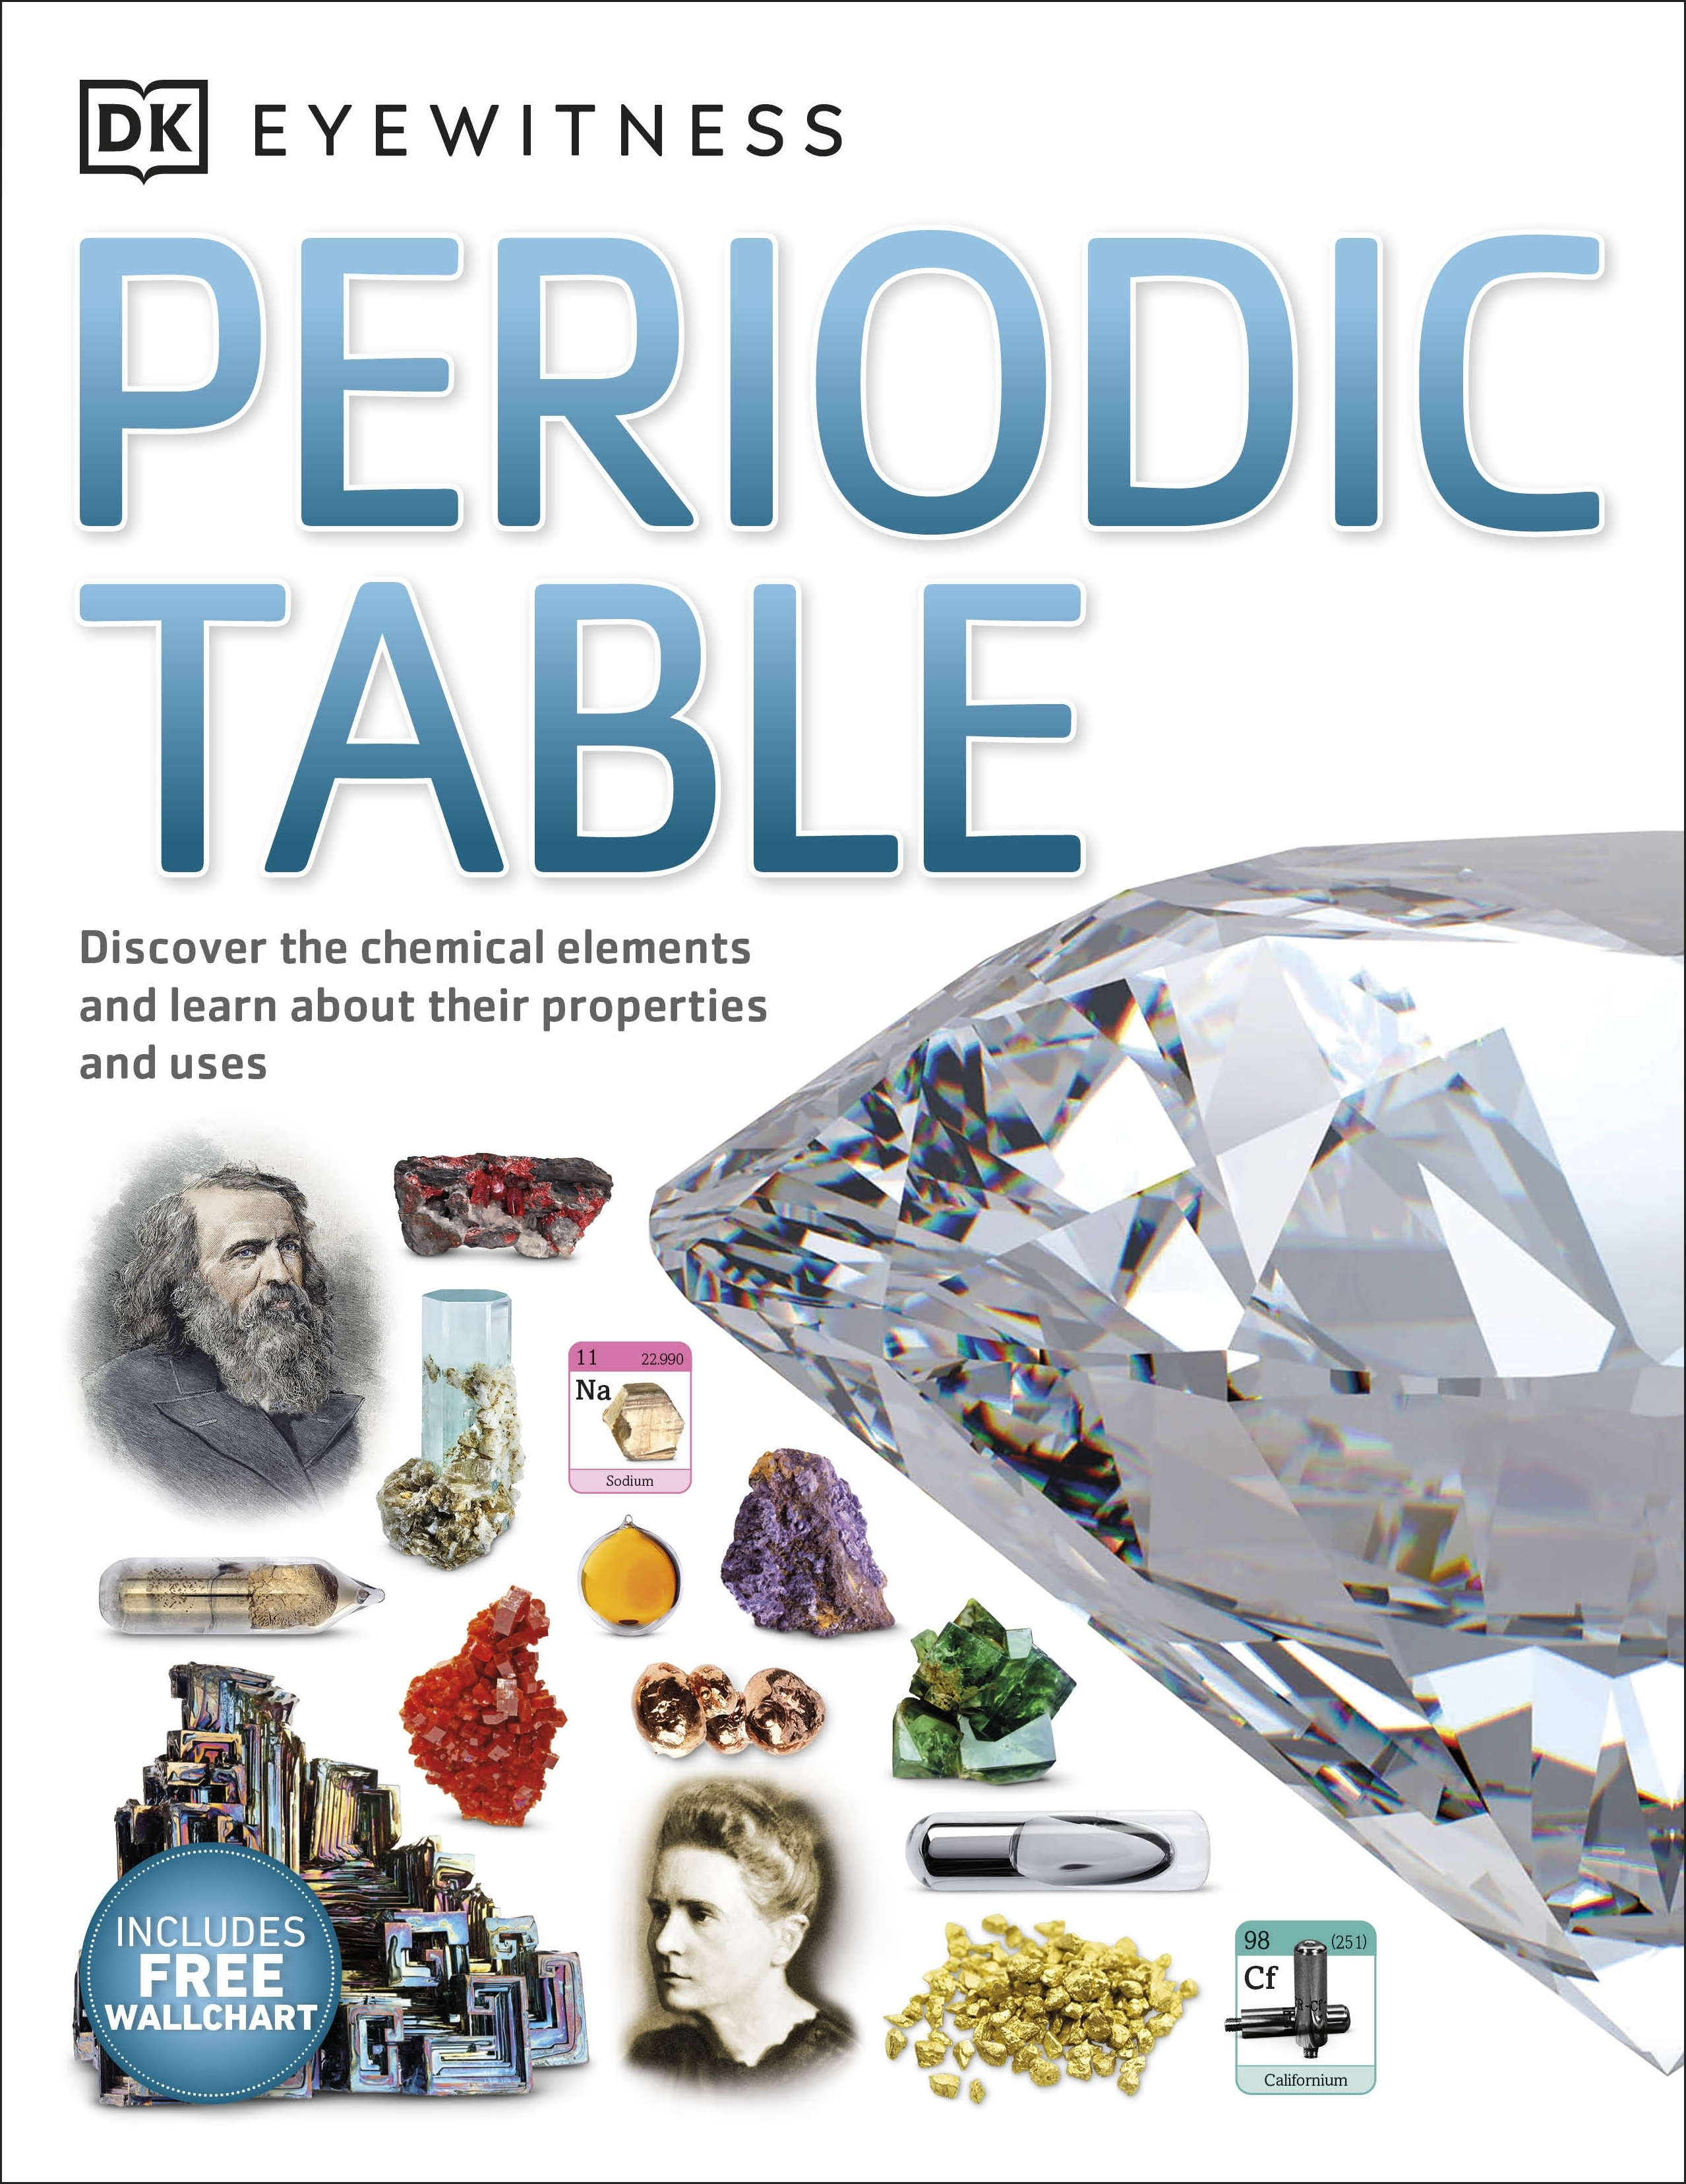 Eyewitness periodic table by dk penguin books australia eyewitness periodic table urtaz Choice Image